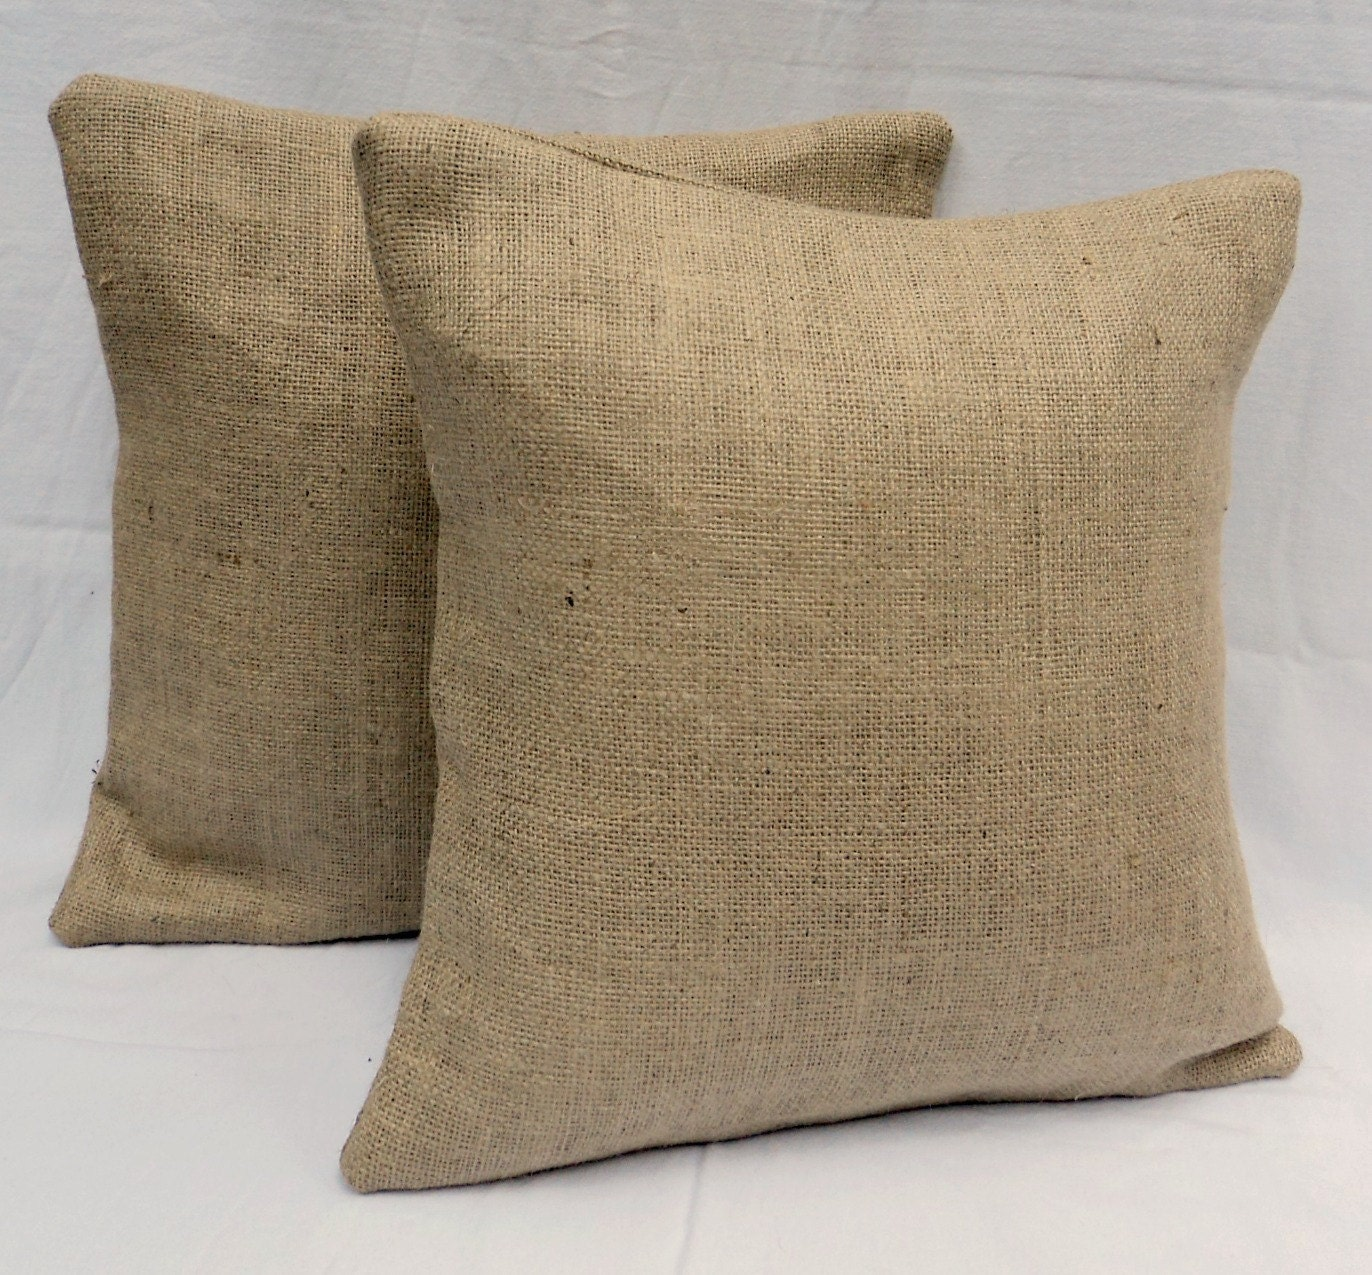 Set Of 2 18 X 18 Burlap Throw Pillows Fully Lined. Guest Bathroom Decorating Ideas. Diamond Furniture Living Room Sets. Decorative Corner Guards. Door Stops Decorative. Home Decorators Coupon 50 Off 200. Western Living Room Set. Contempory Living Room. Living Room Decor